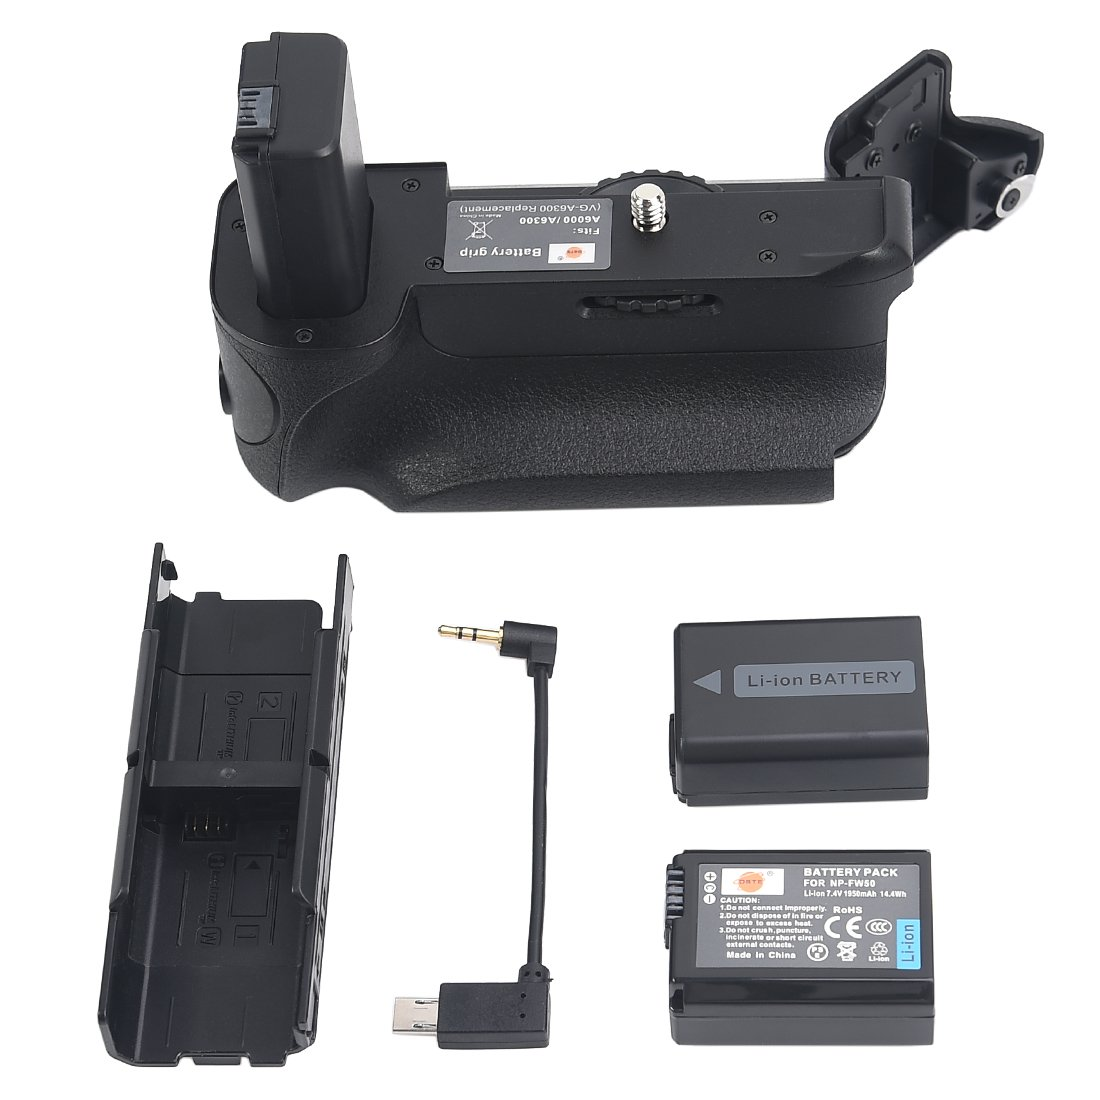 DSTE Pro VG-6300 Vertical Battery Grip + 2x NP-FW50 Battery For SONY A6300 A6000 Digital Camera